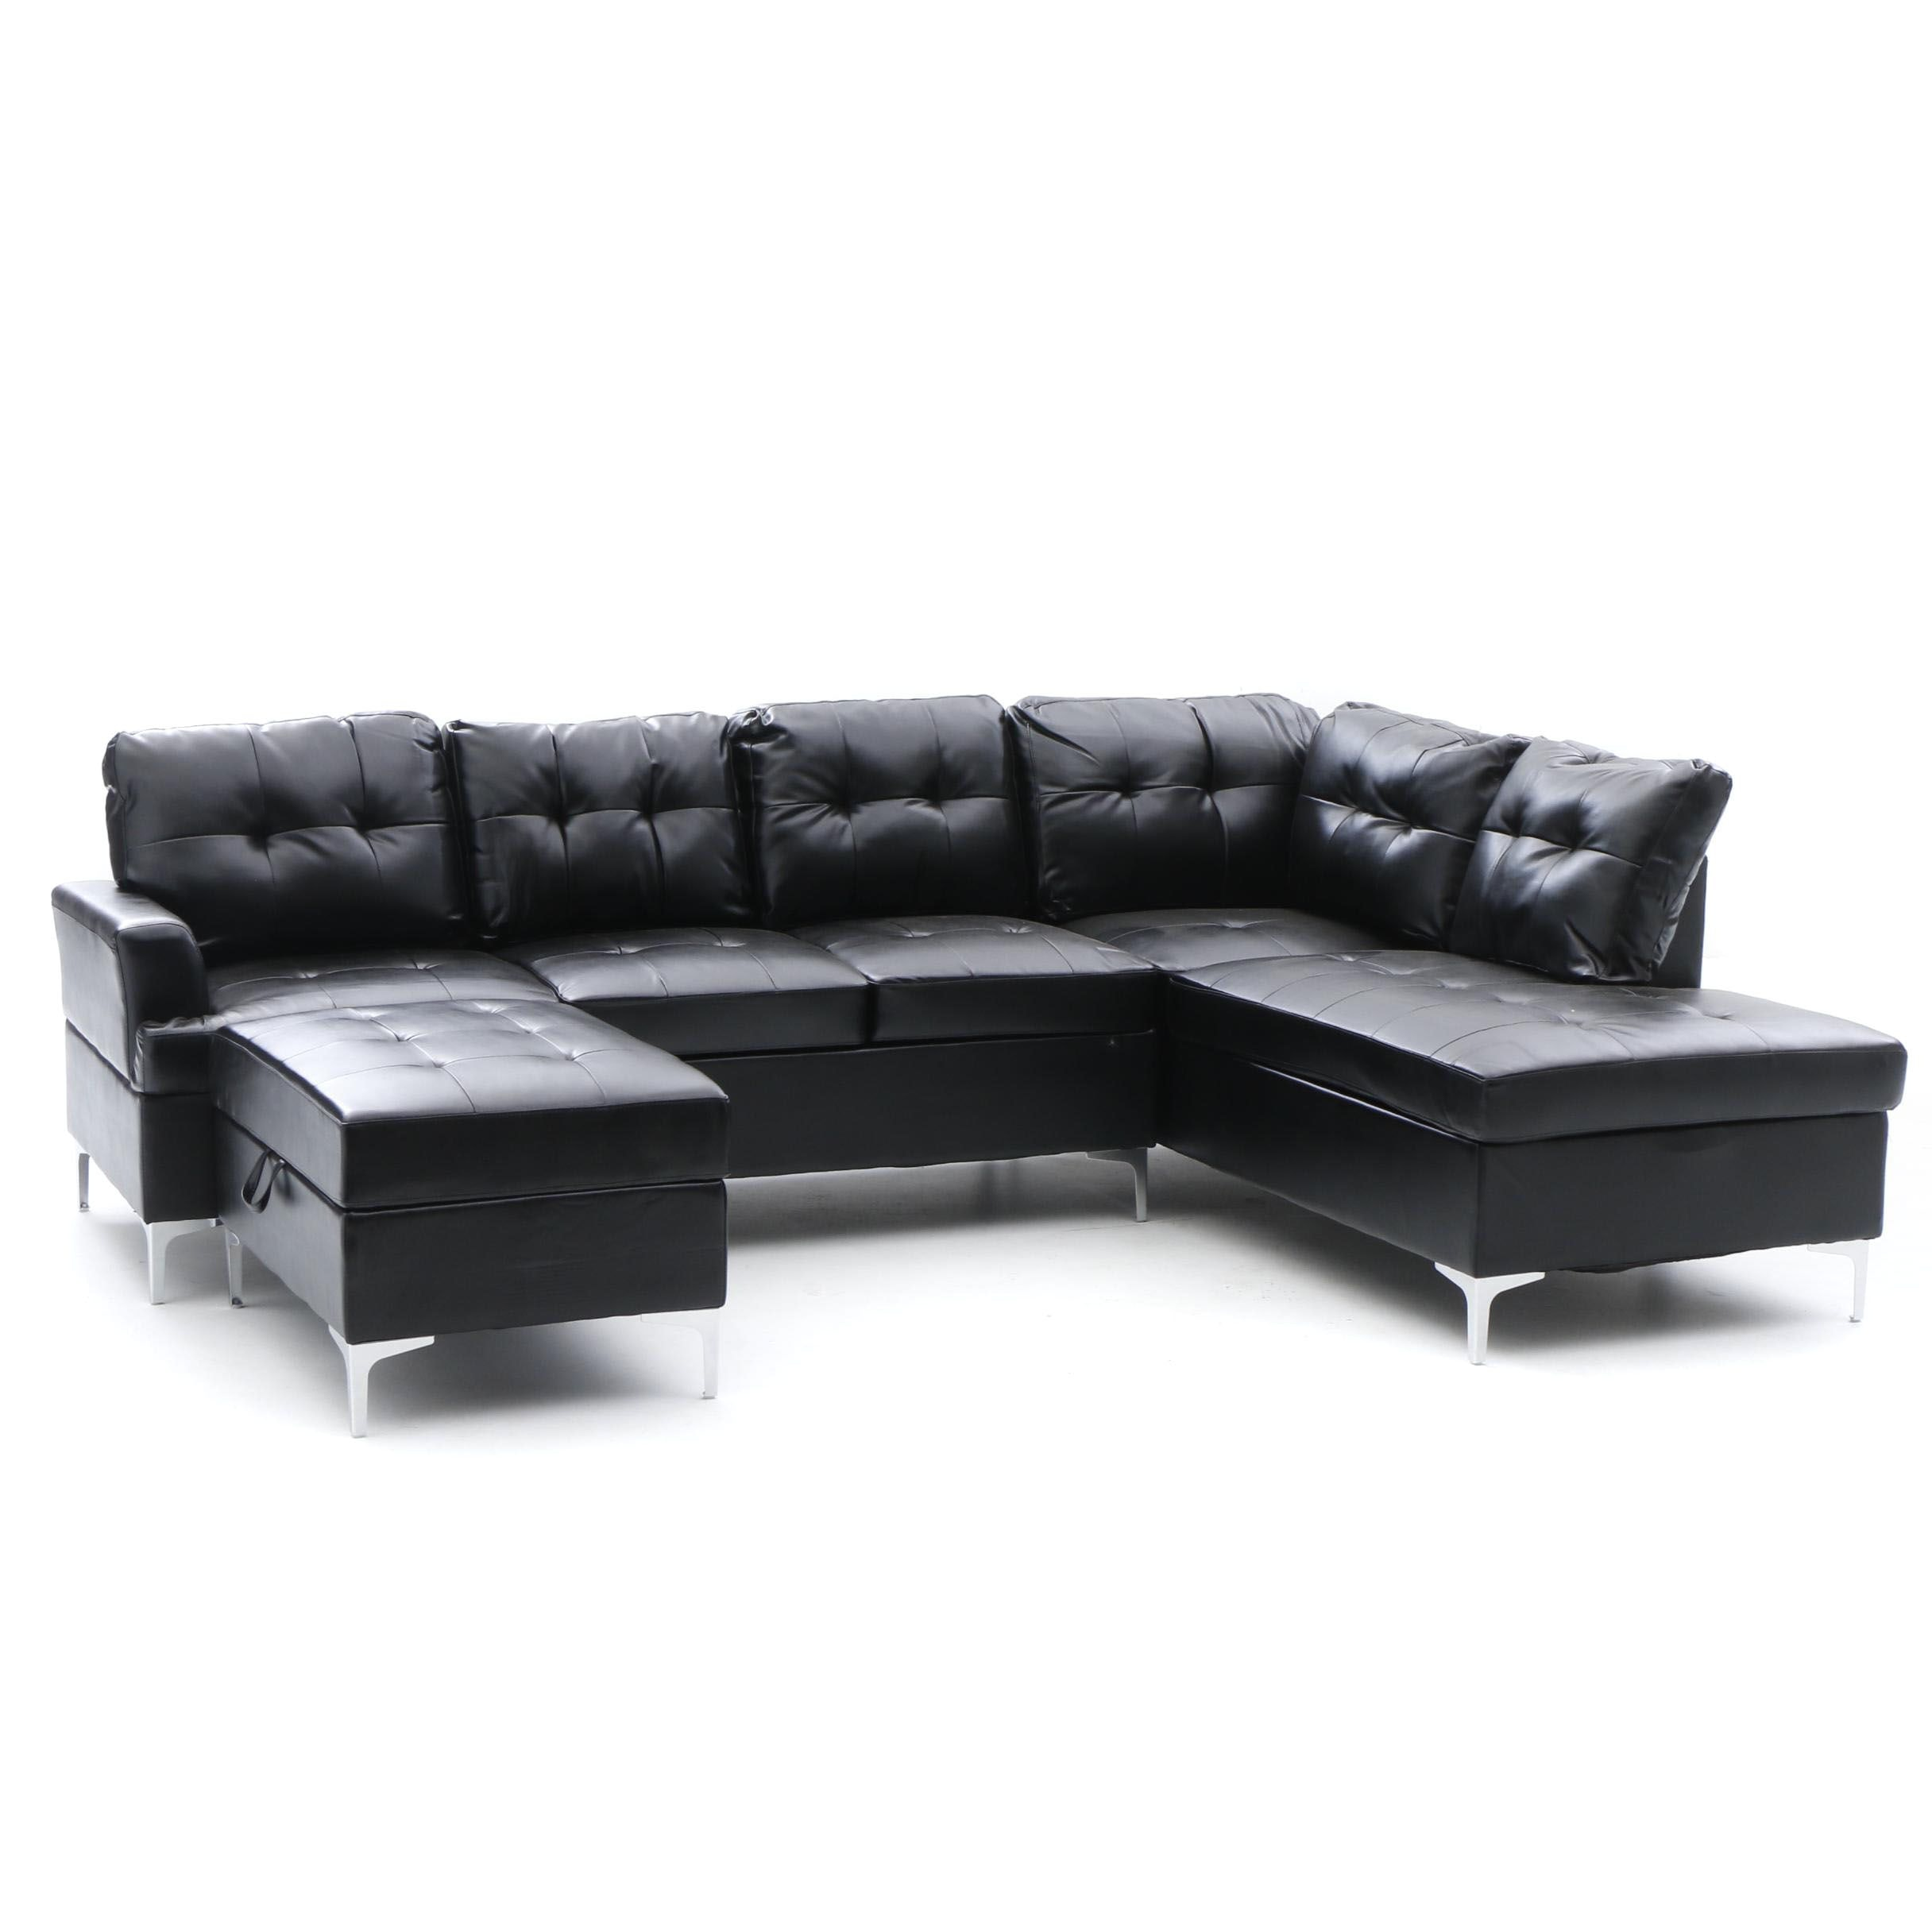 Black Faux Leather Sectional Sofa Ebth